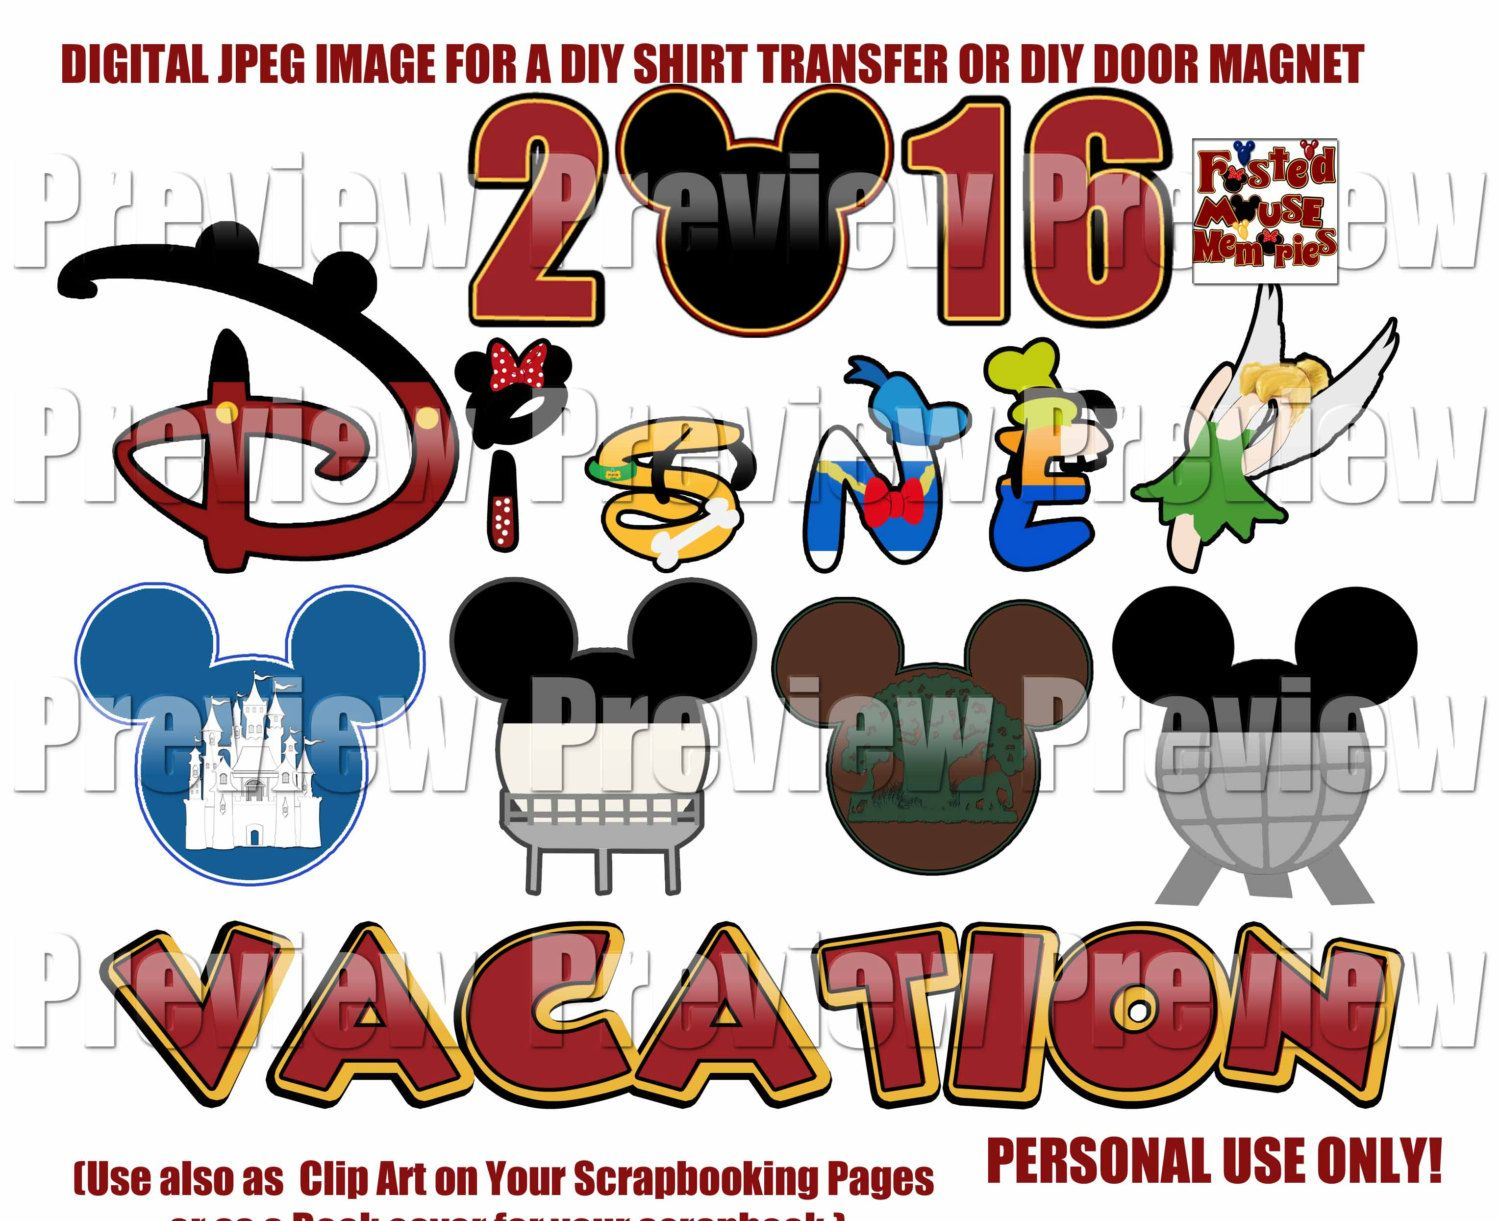 Printable family disney mouse heads shirt transfer diy disney shirts